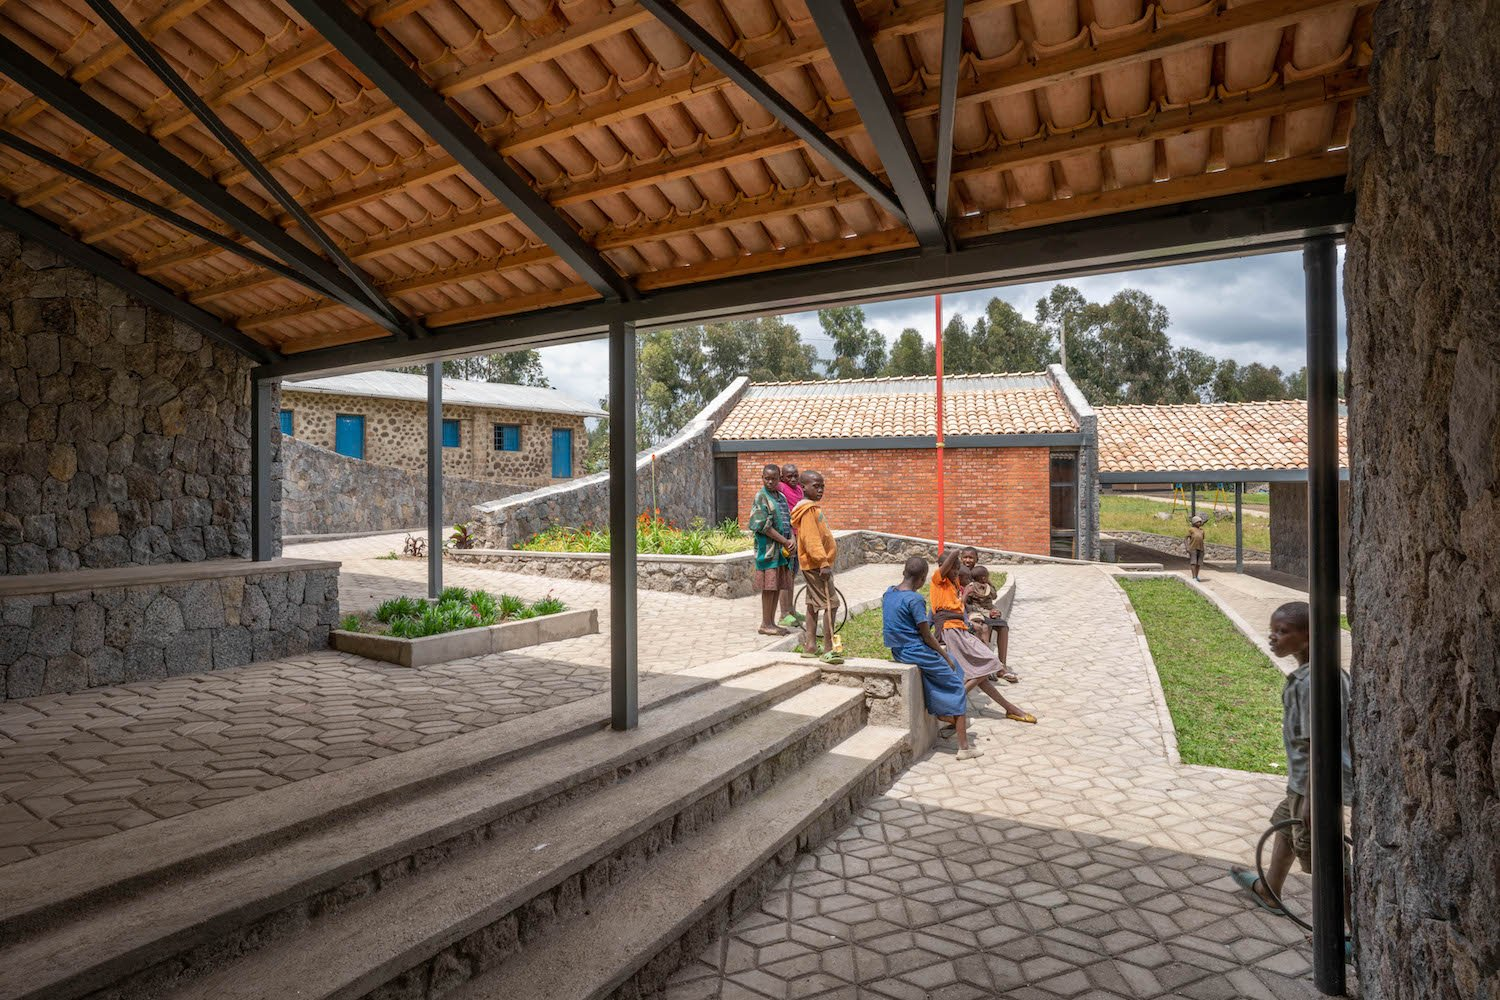 A central plaza at the heart of the campus provides an outdoor assembly space for the school's community. MASS Design Group / Alan Ricks (Full Copyright)